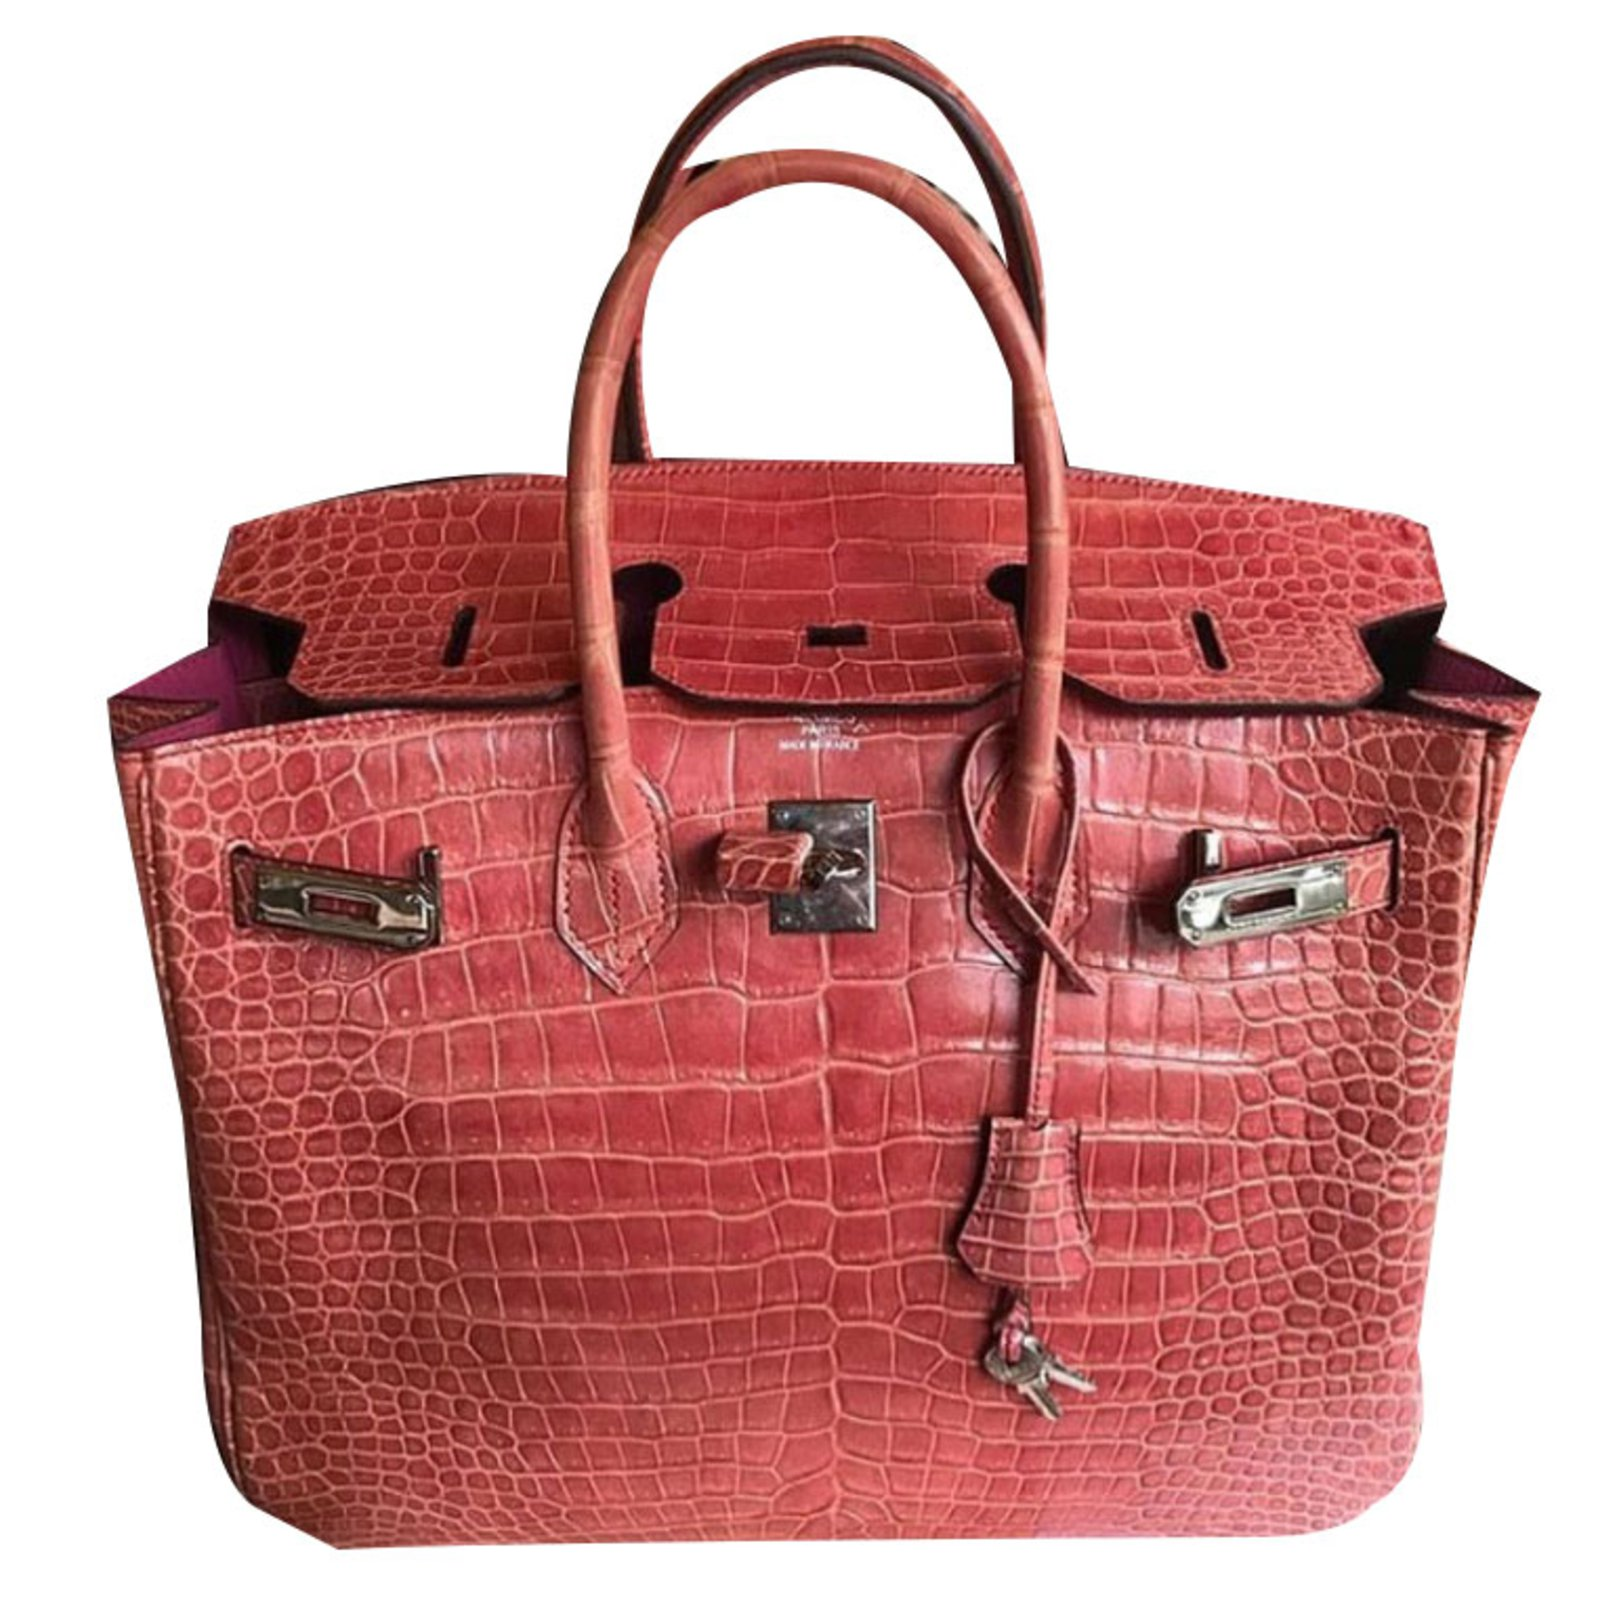 Hermès Birkin 35 croco Handbags Exotic leather Pink ref.53805 - Joli ... 2f30d51865